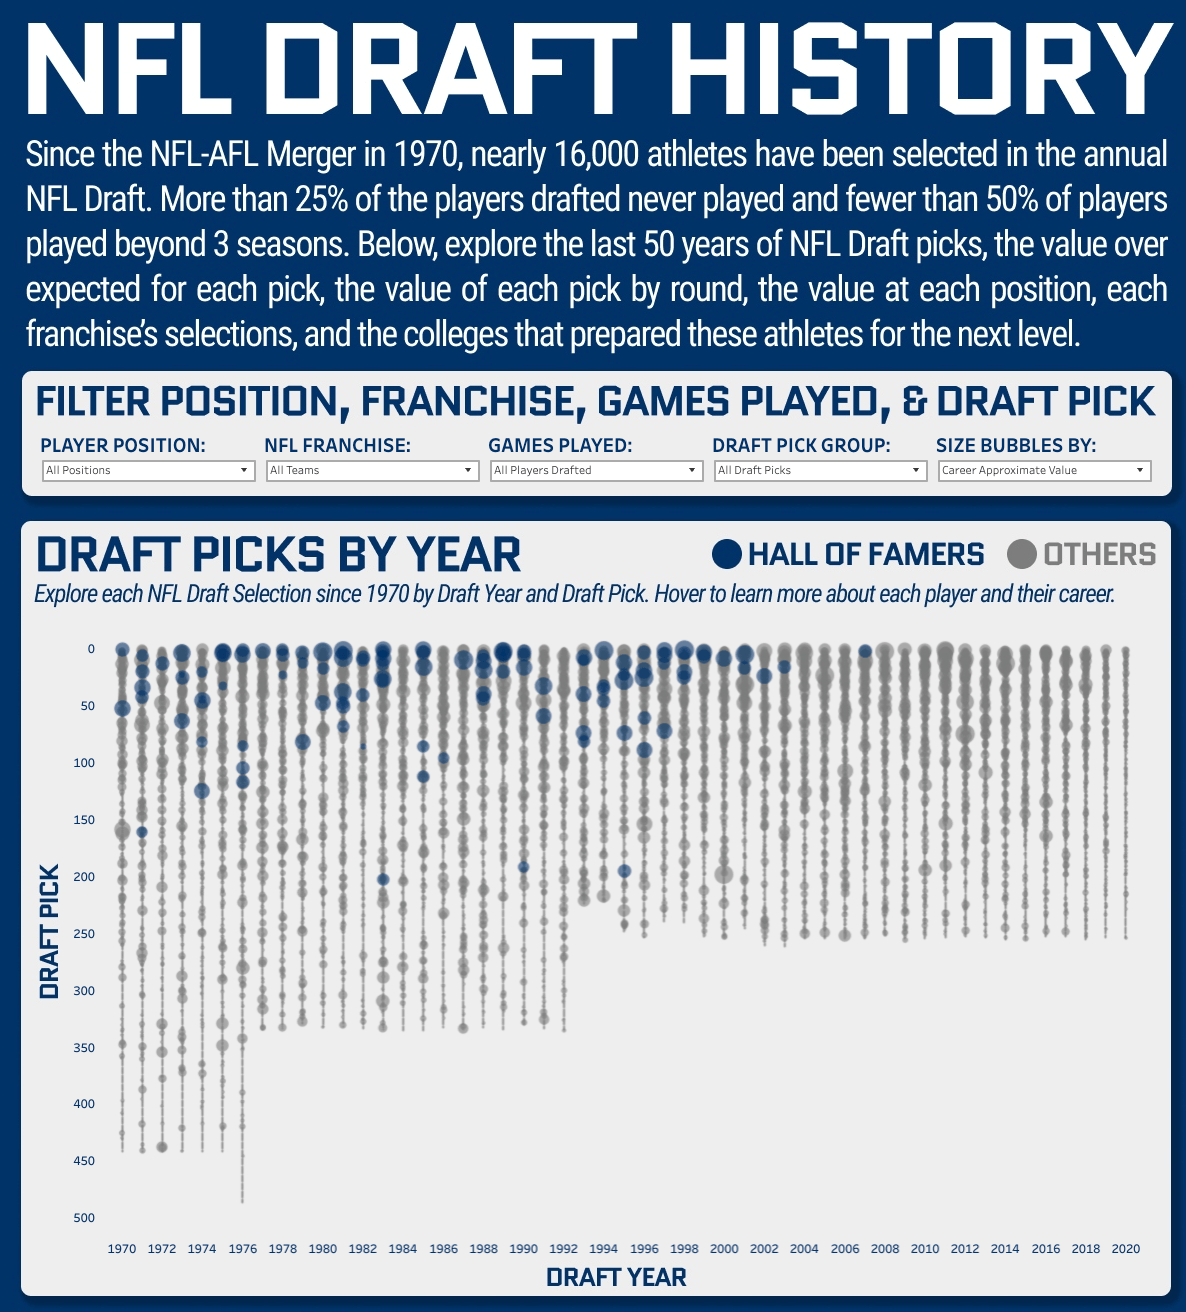 NFL Draft History: 50 Years of Selections Sam Epley